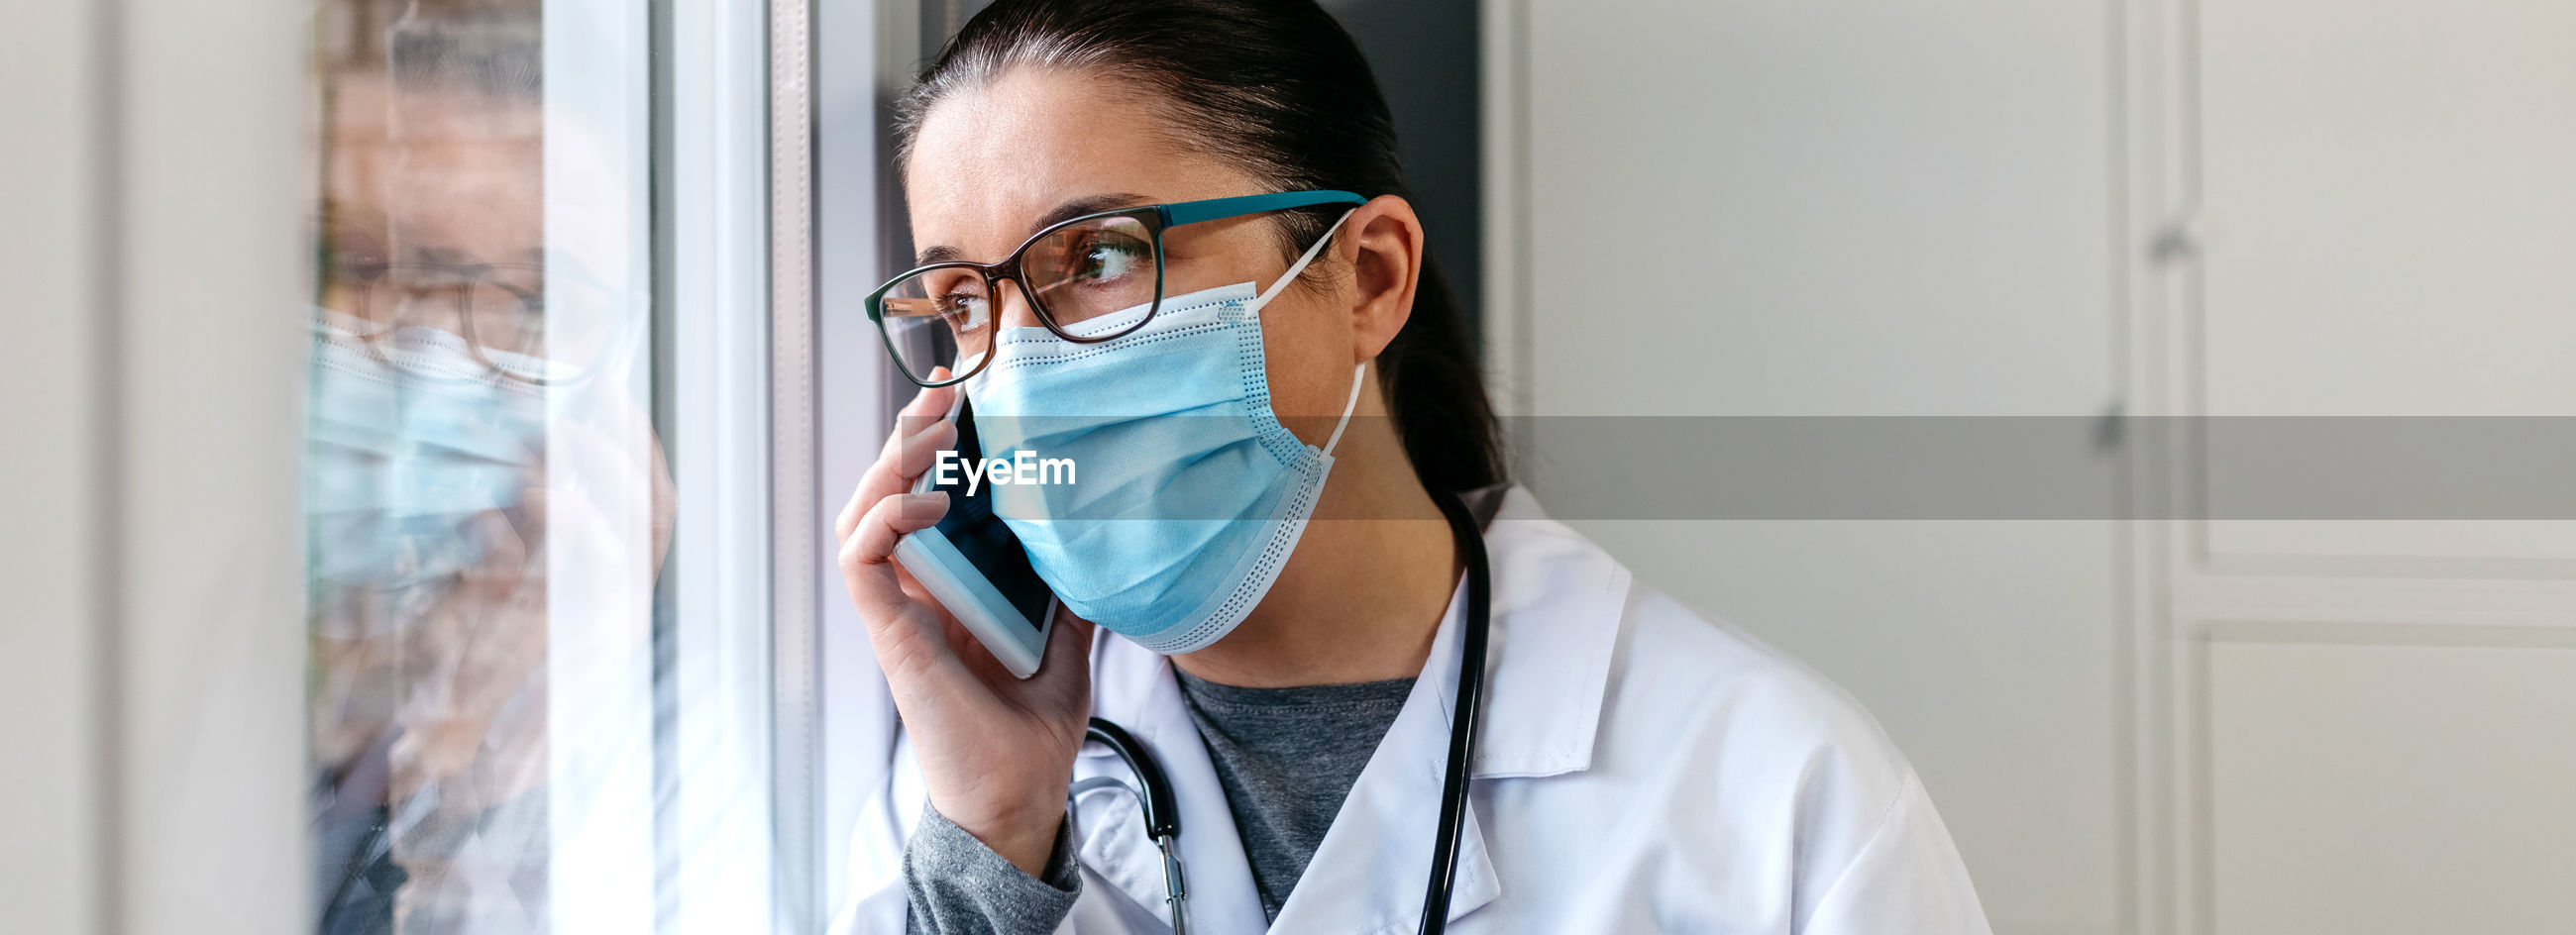 MIDSECTION OF WOMAN WEARING MASK IN MIRROR